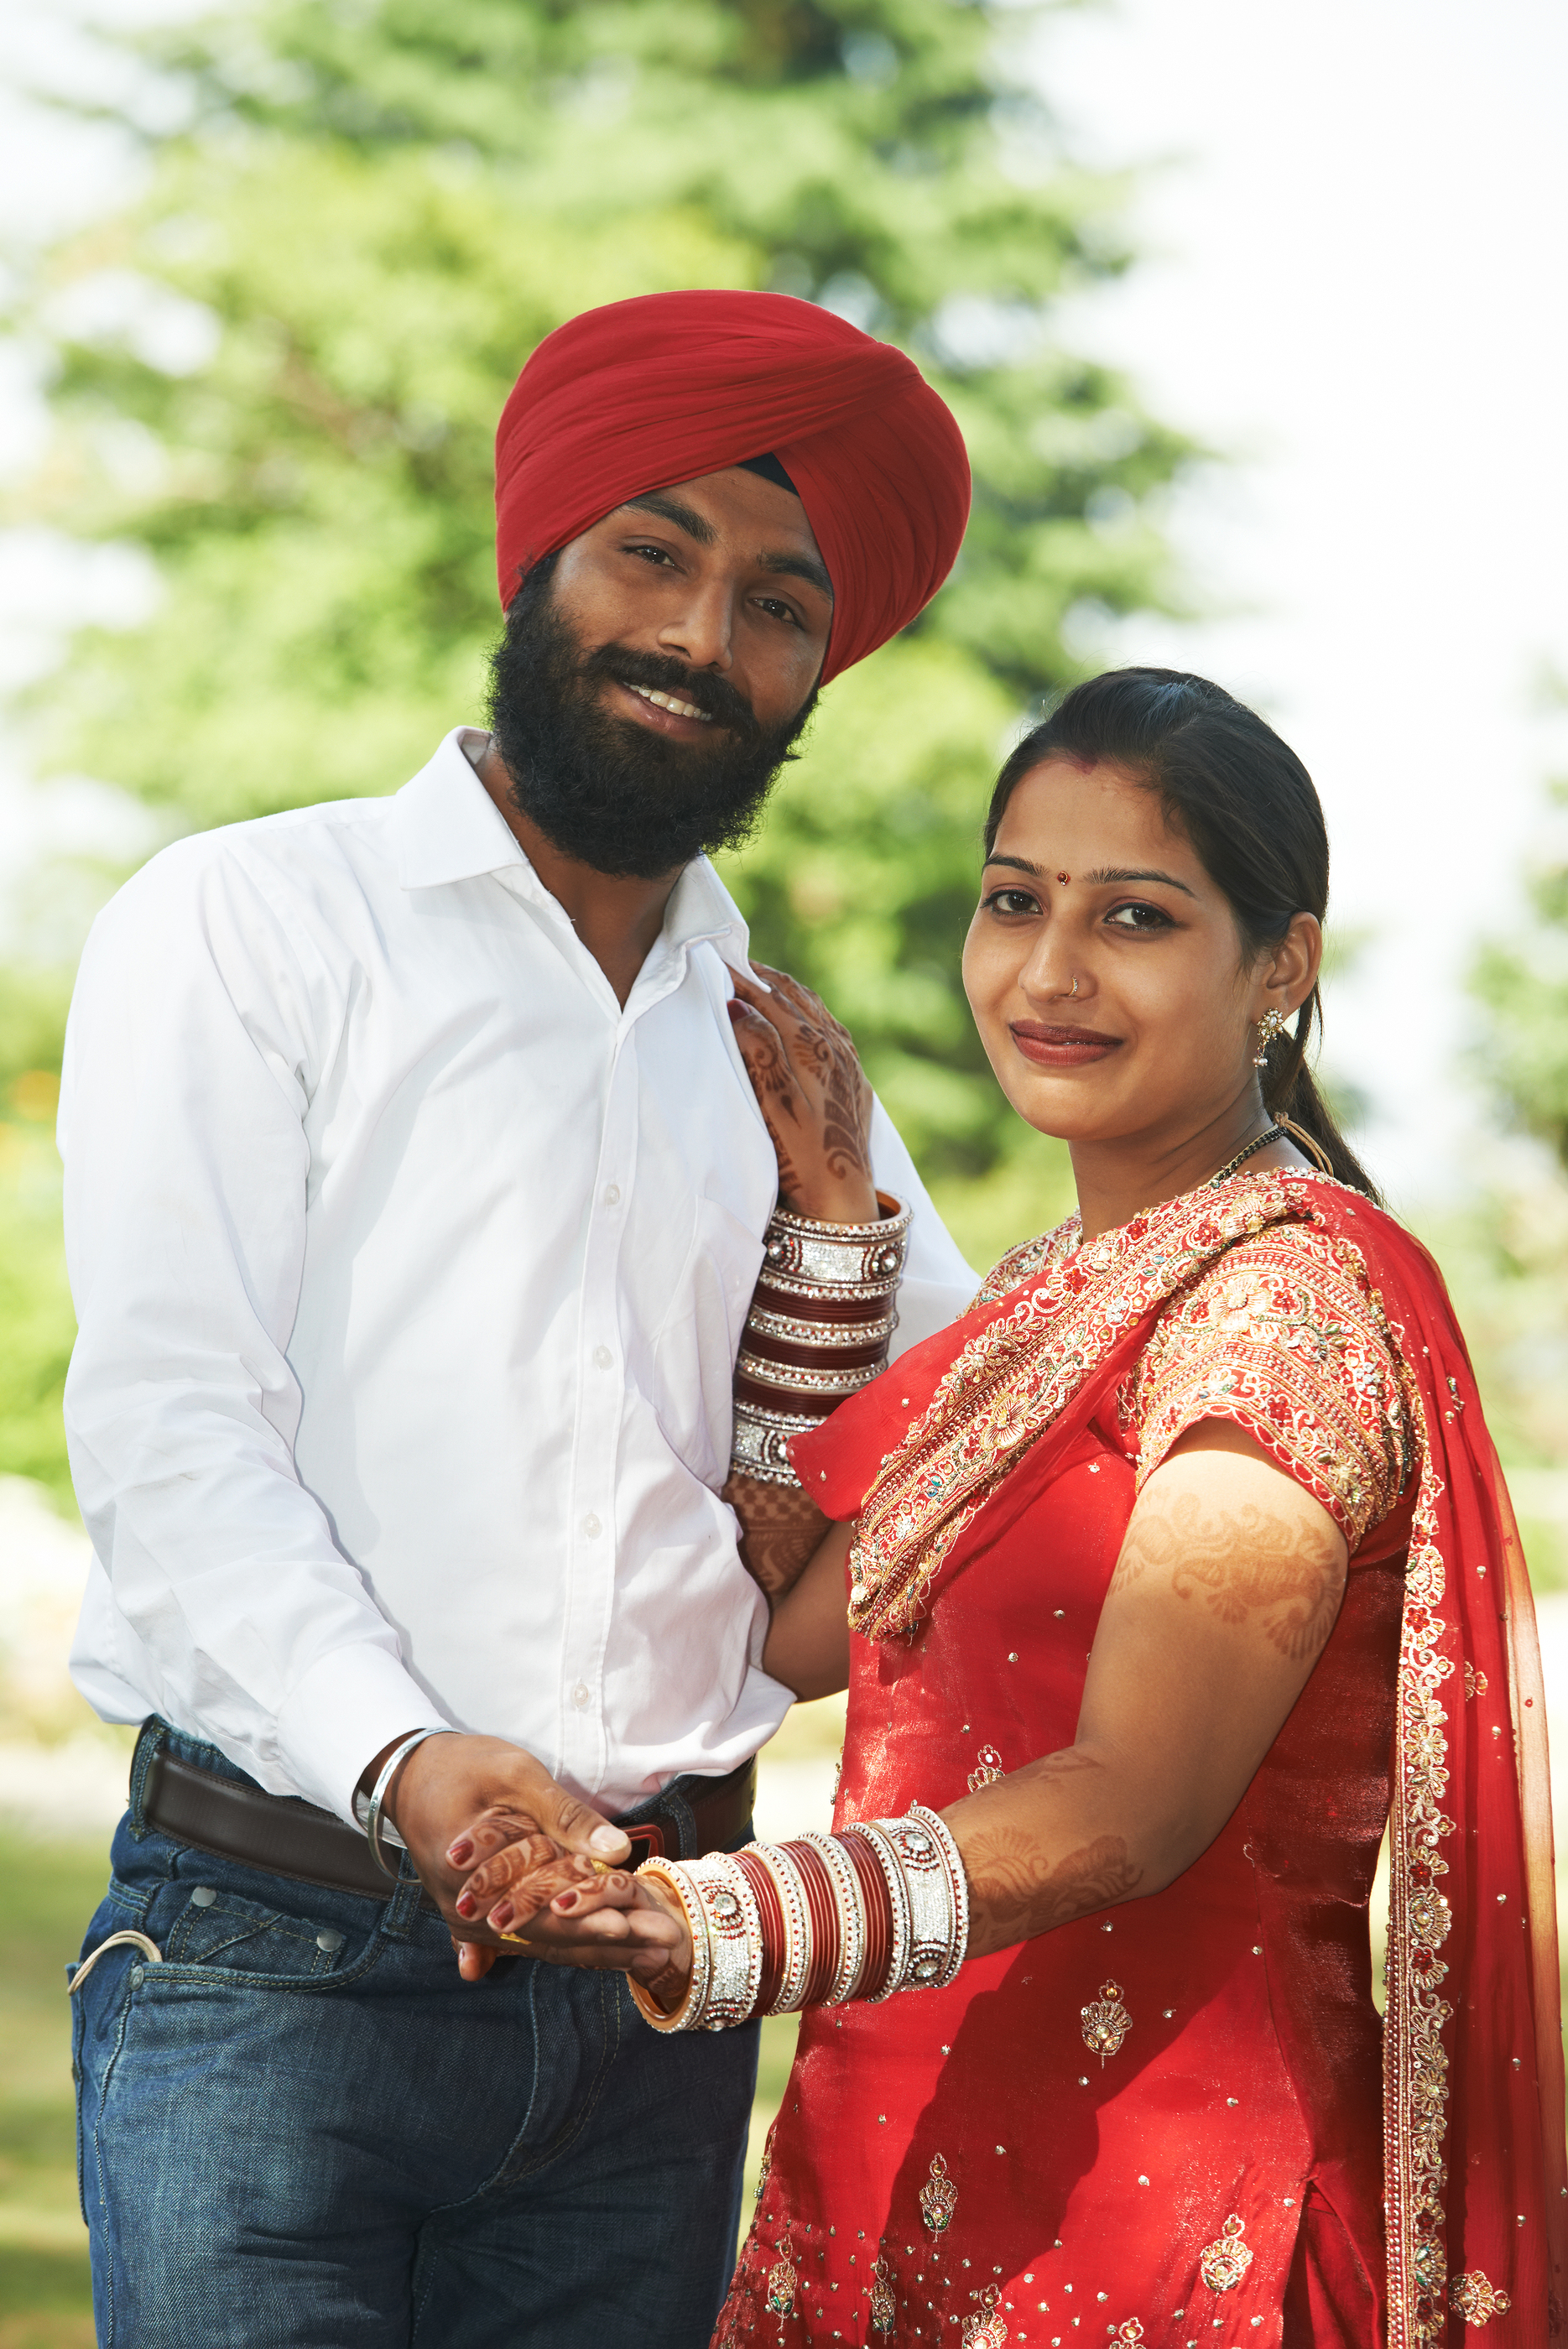 dating a man in an arranged marriage